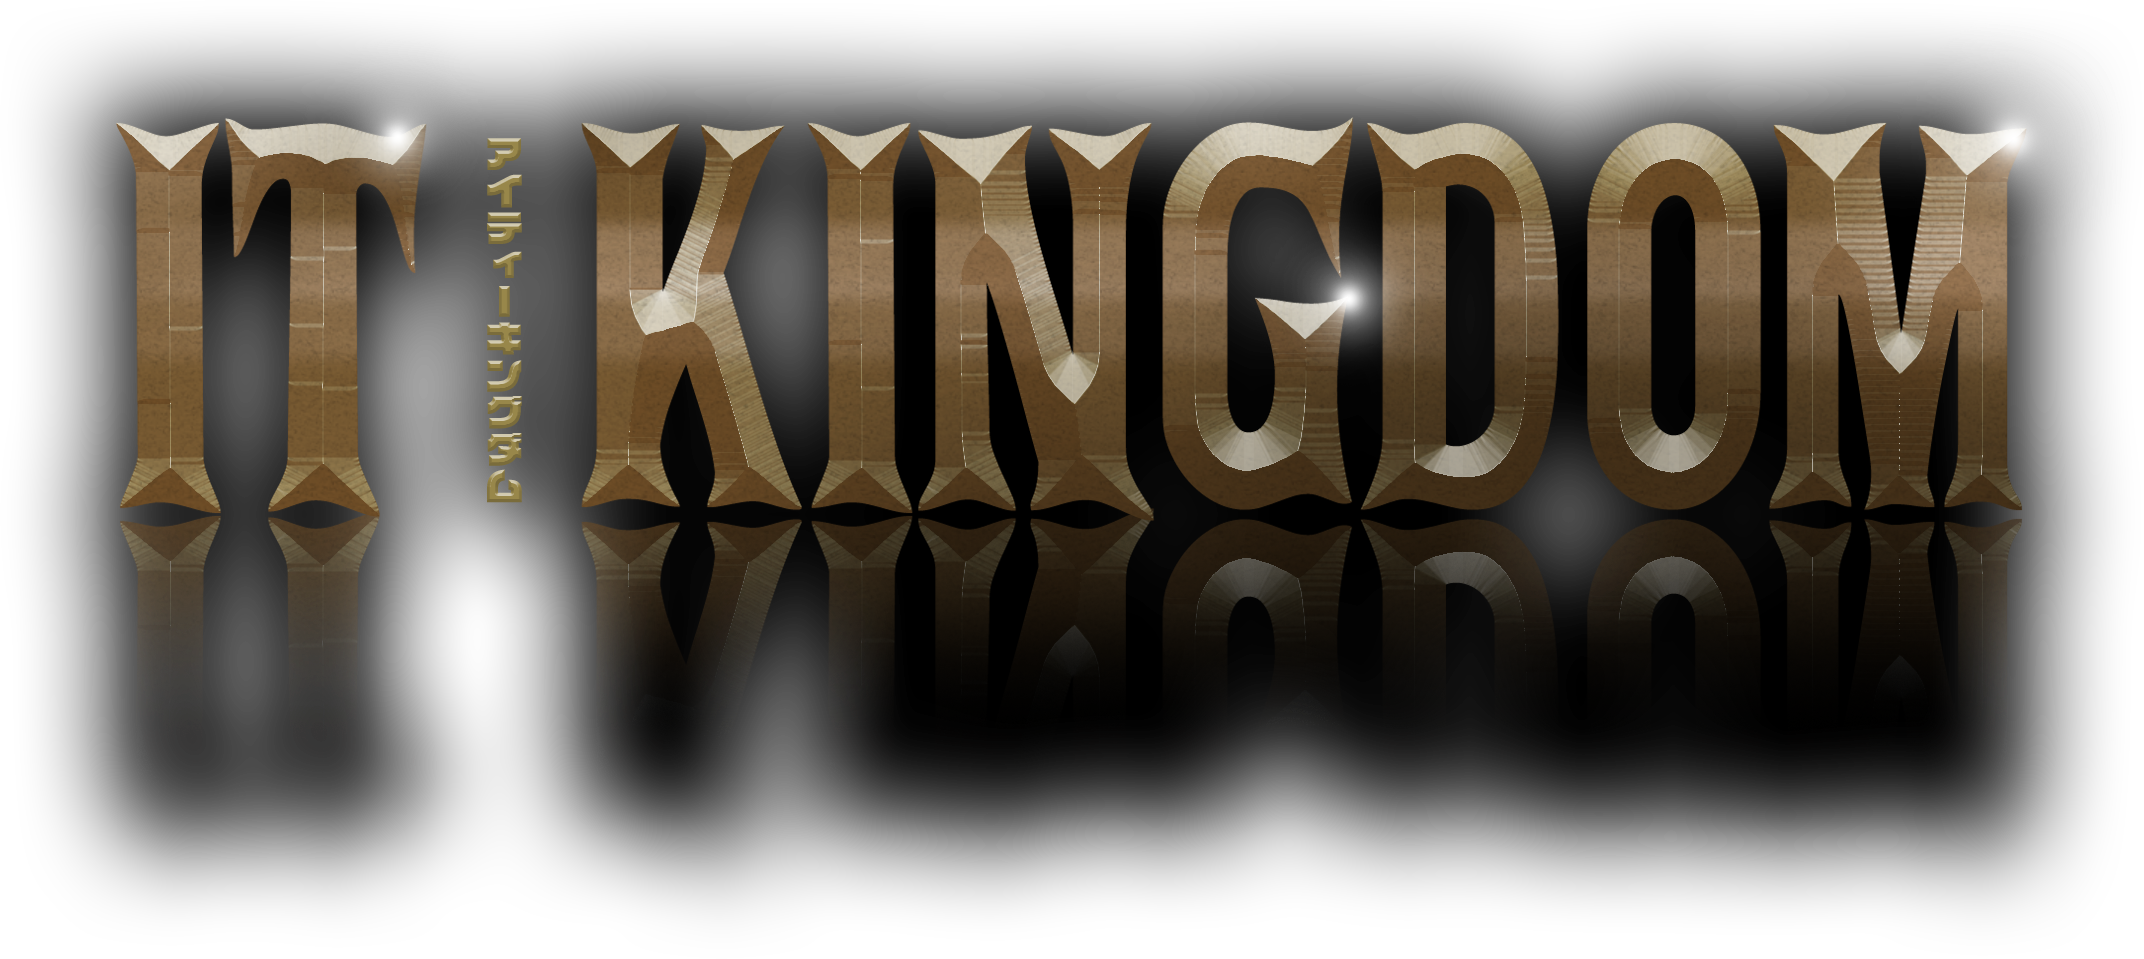 IT KINGDOM